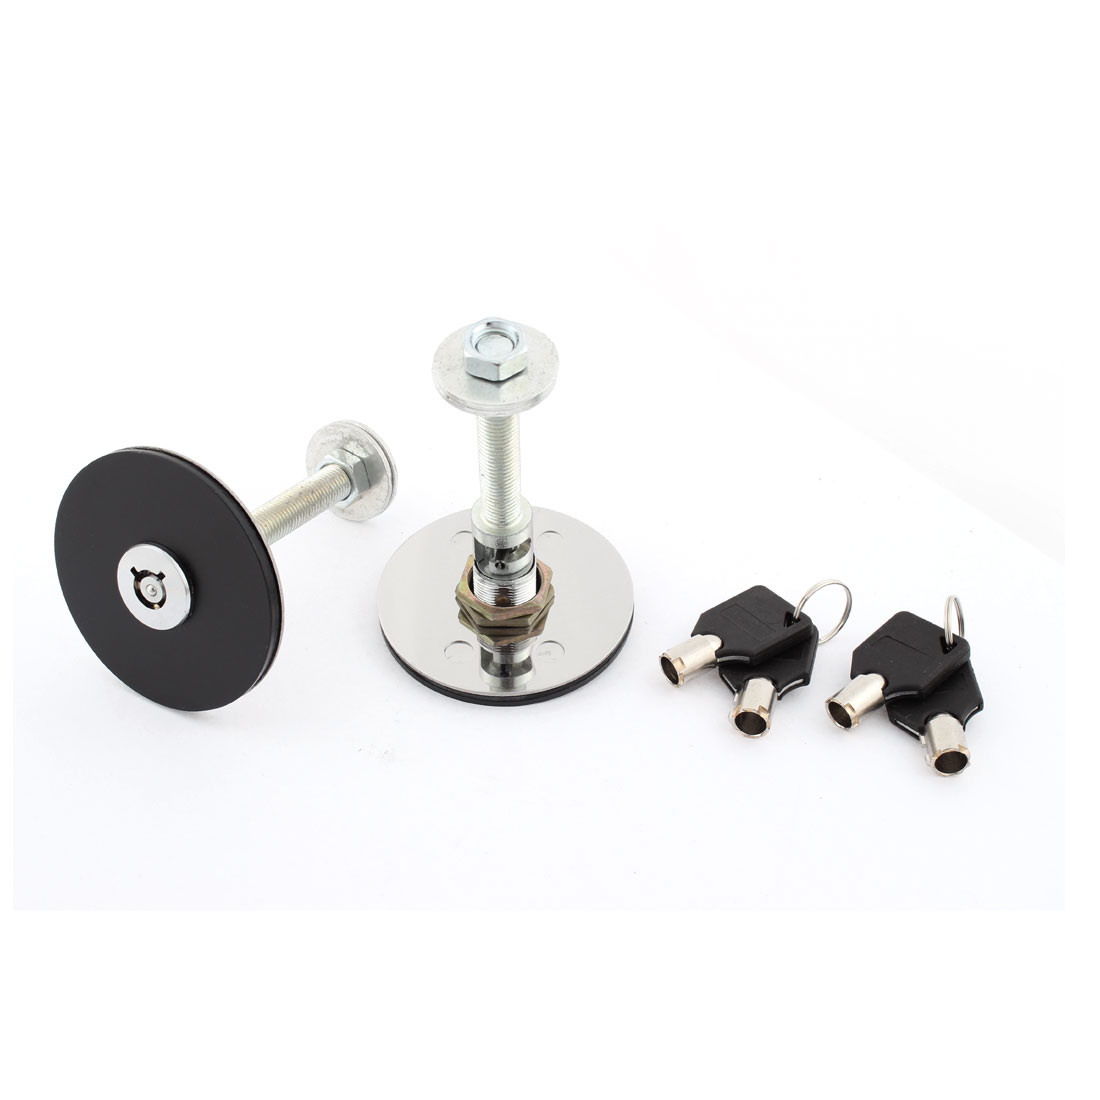 Pair Self Adhesive Alloy Racing Hood Pin Lock Kit Black for Car